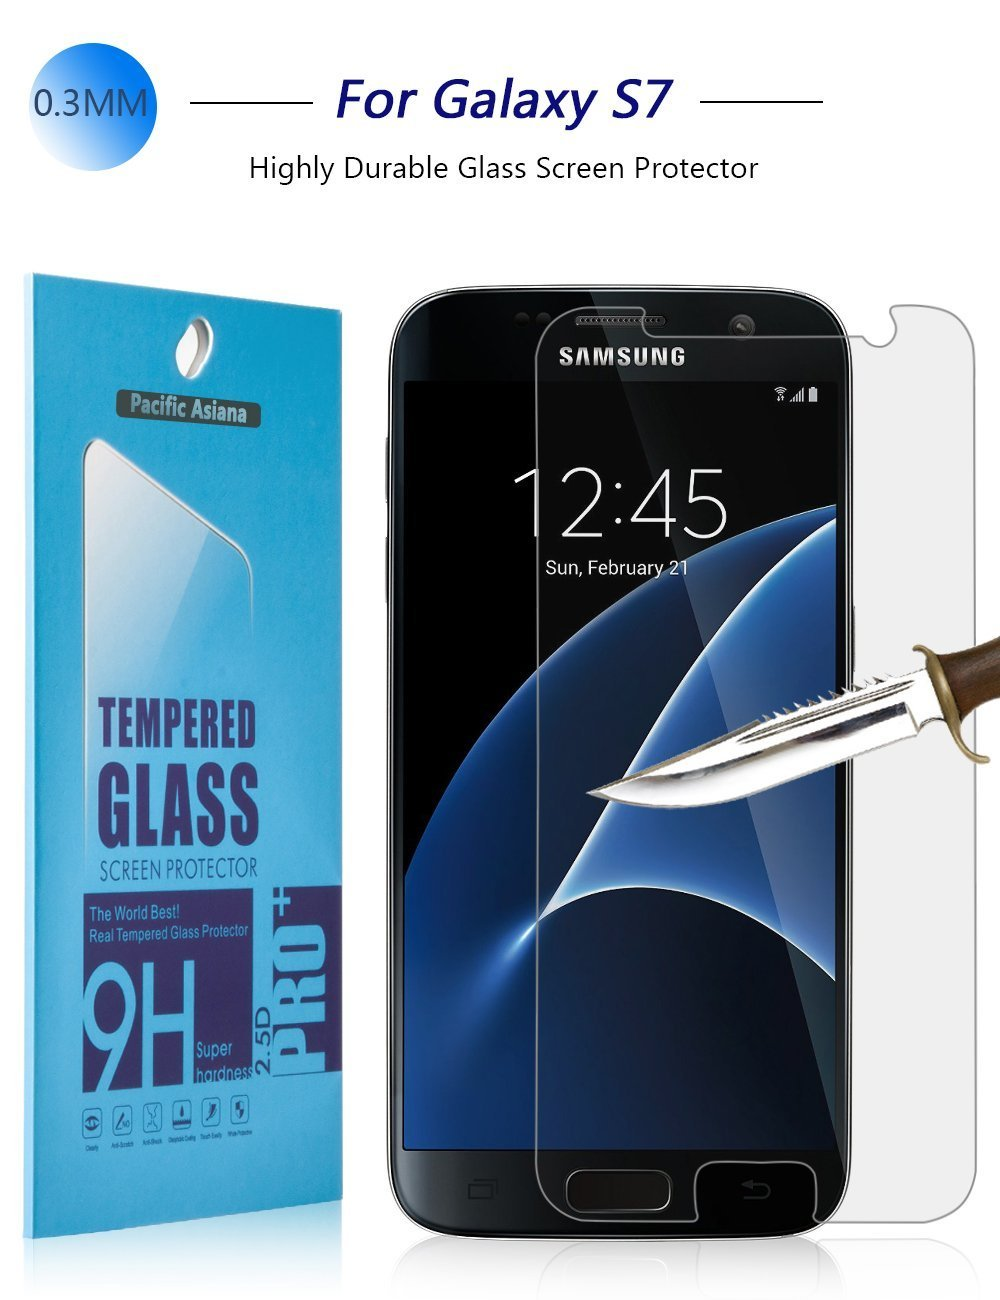 Pacific Asiana 0.3mm Slim HD Anti-scratches Clear Ballistic Tempered Glass Screen Protector for Samsung Galaxy S7, 1 Pack